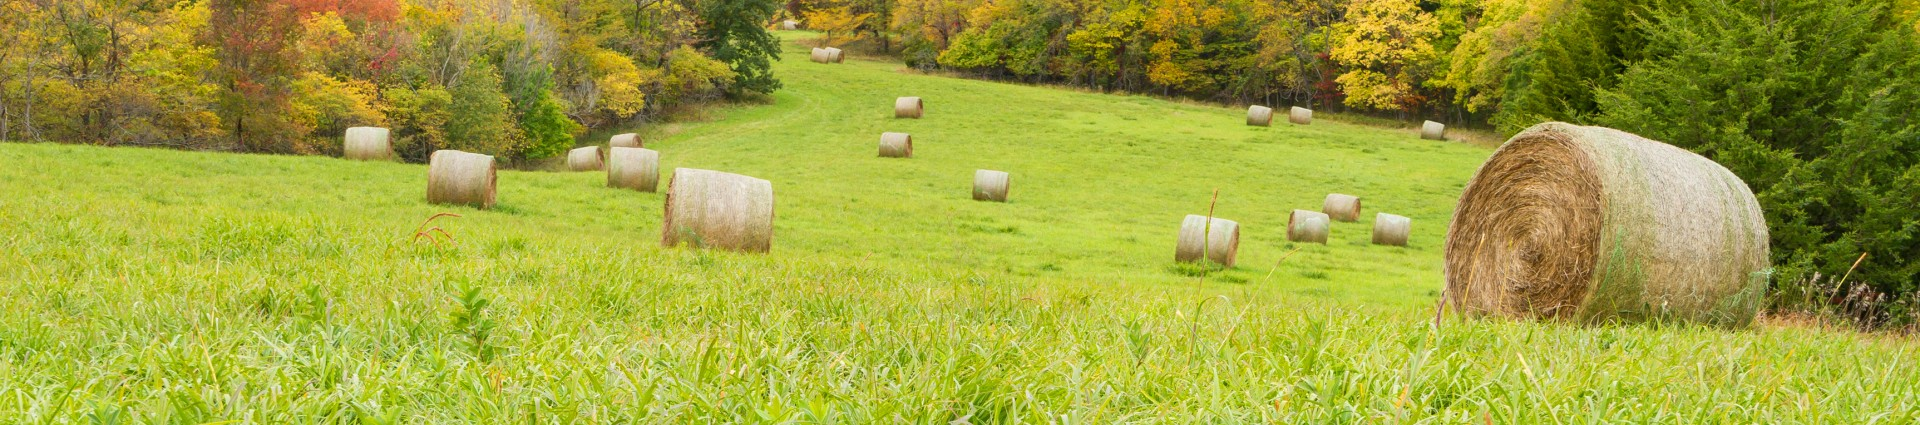 A field with rolled hay bales